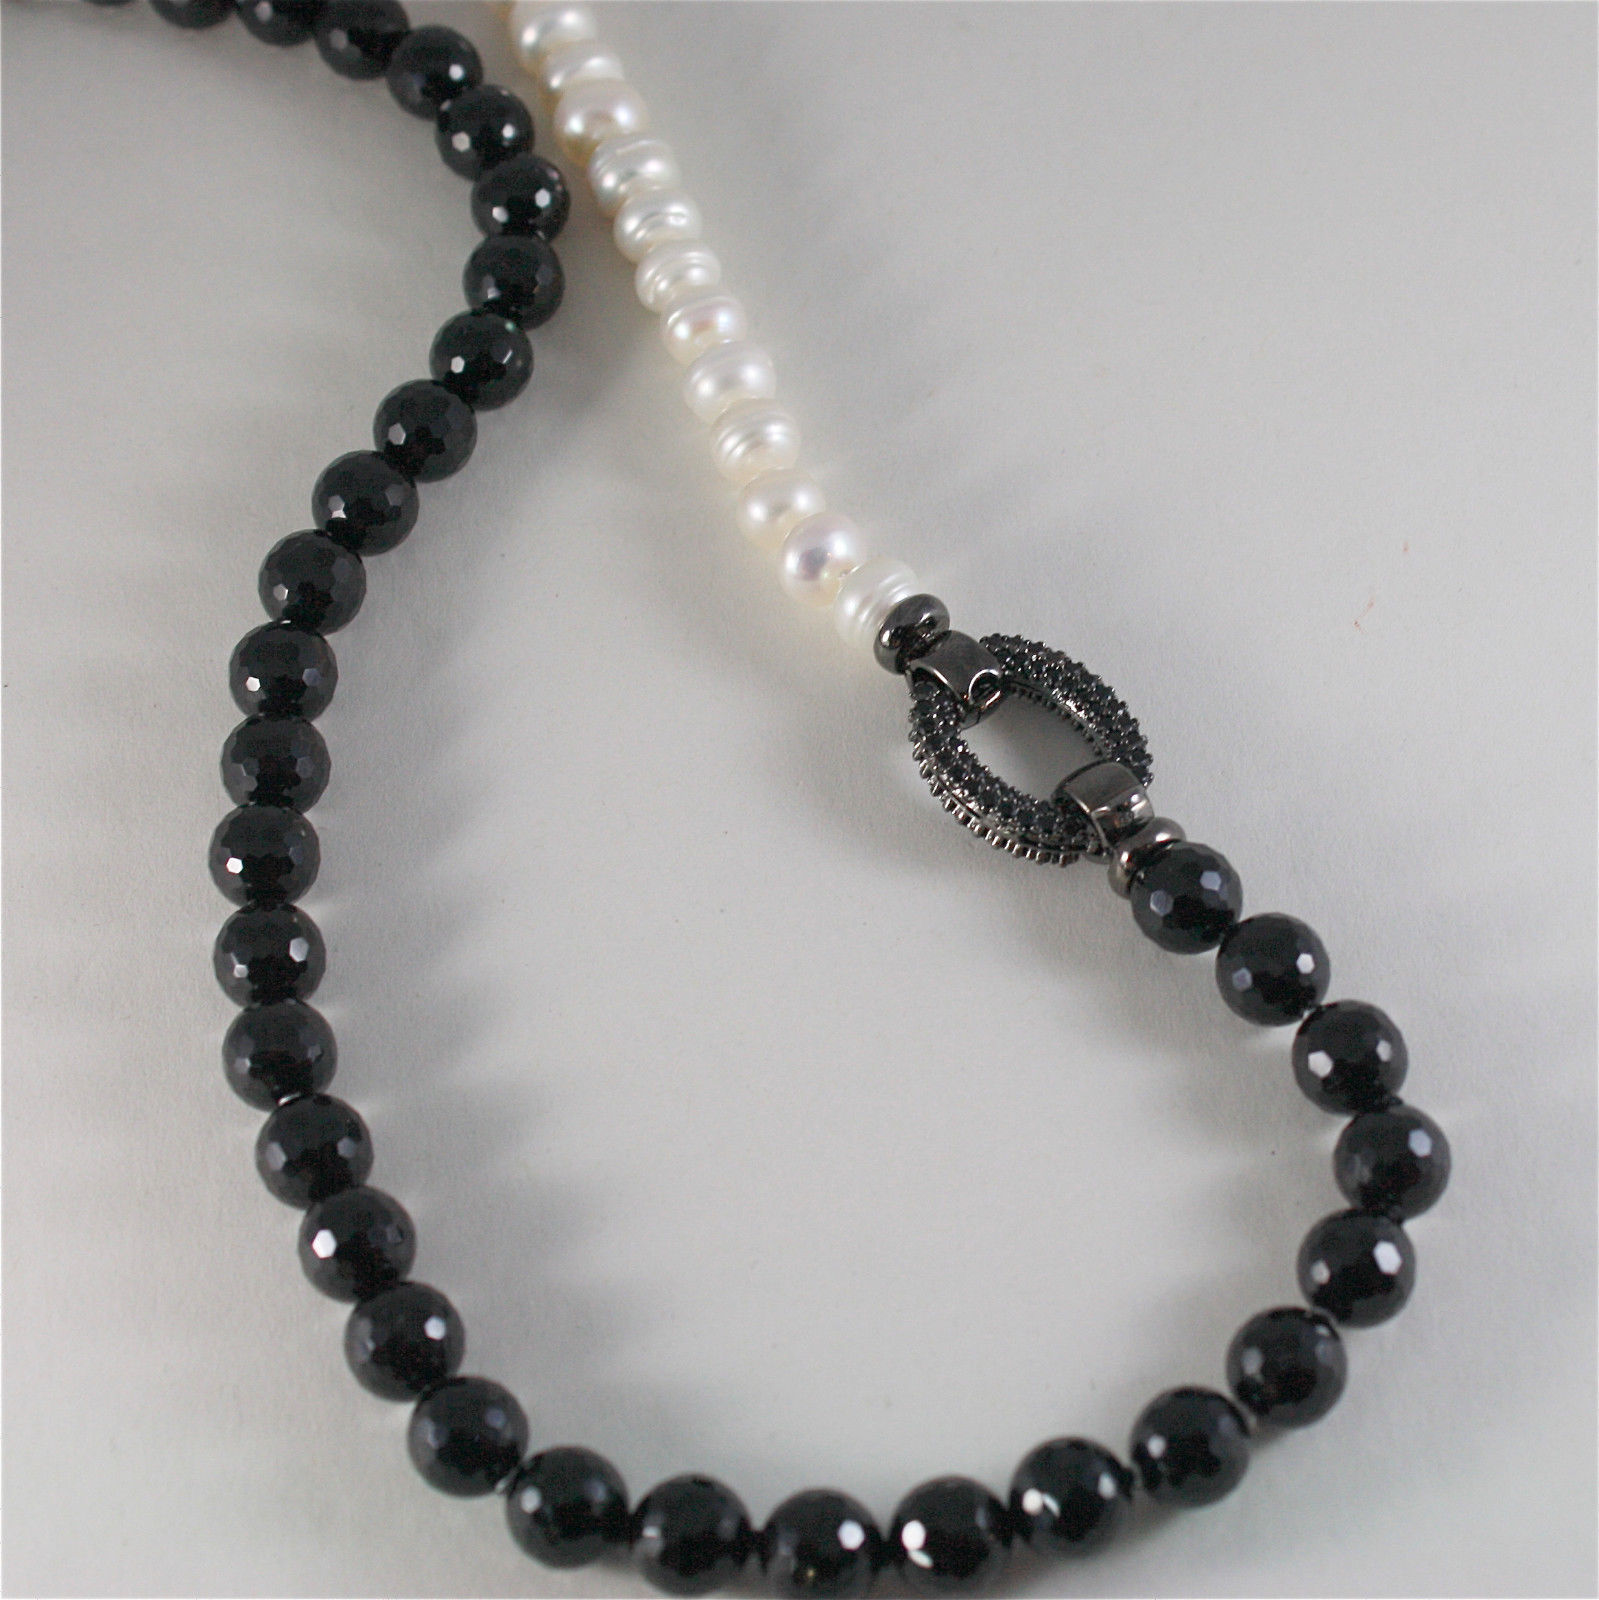 .925 SILVER BURNISH NECKLACE WITH ONYX, PEARLS AND BEAUTIFUL CLASP WITH CRYSTALS